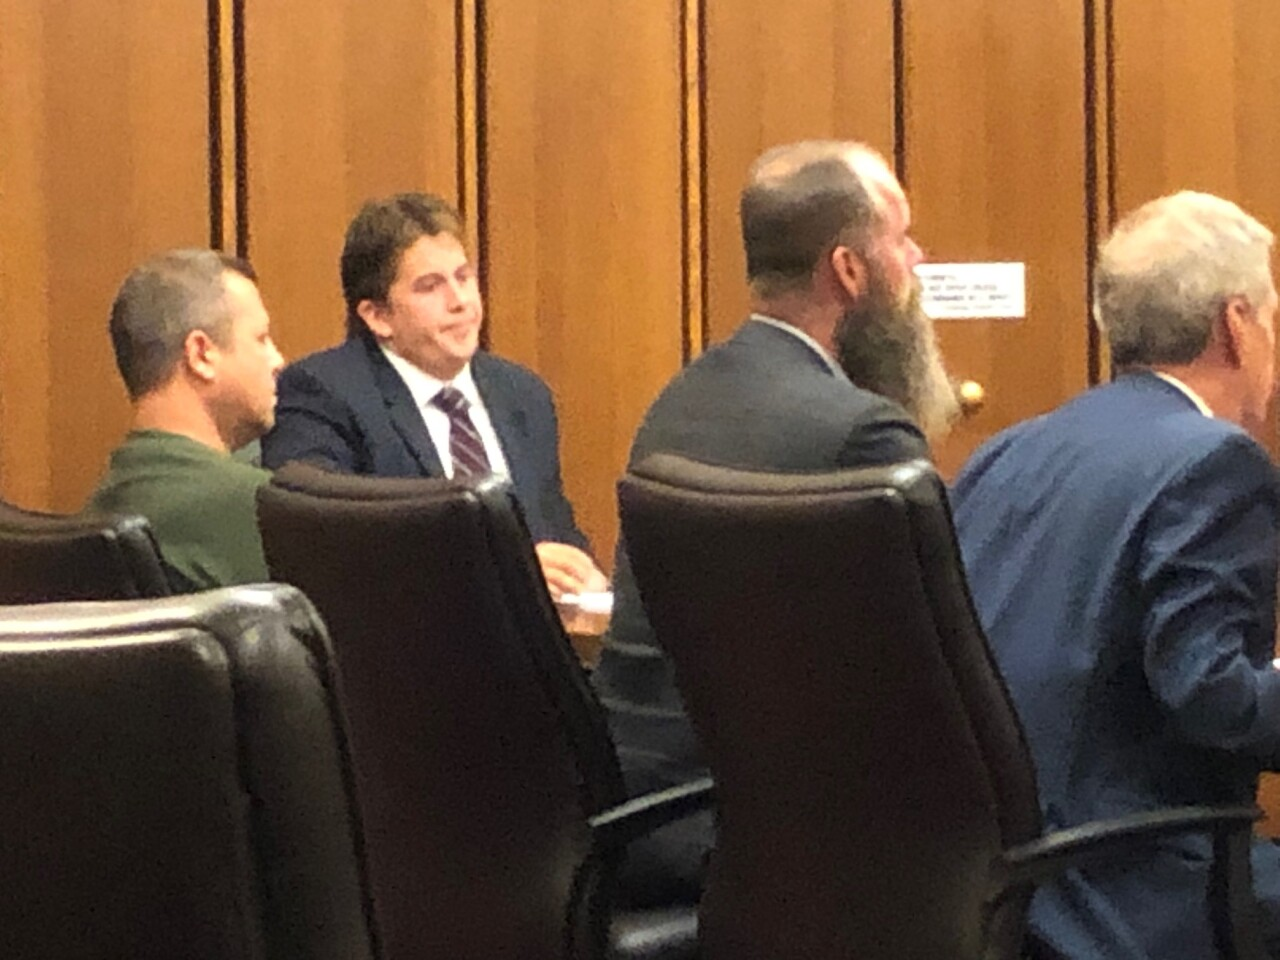 Evans and Dugan in court